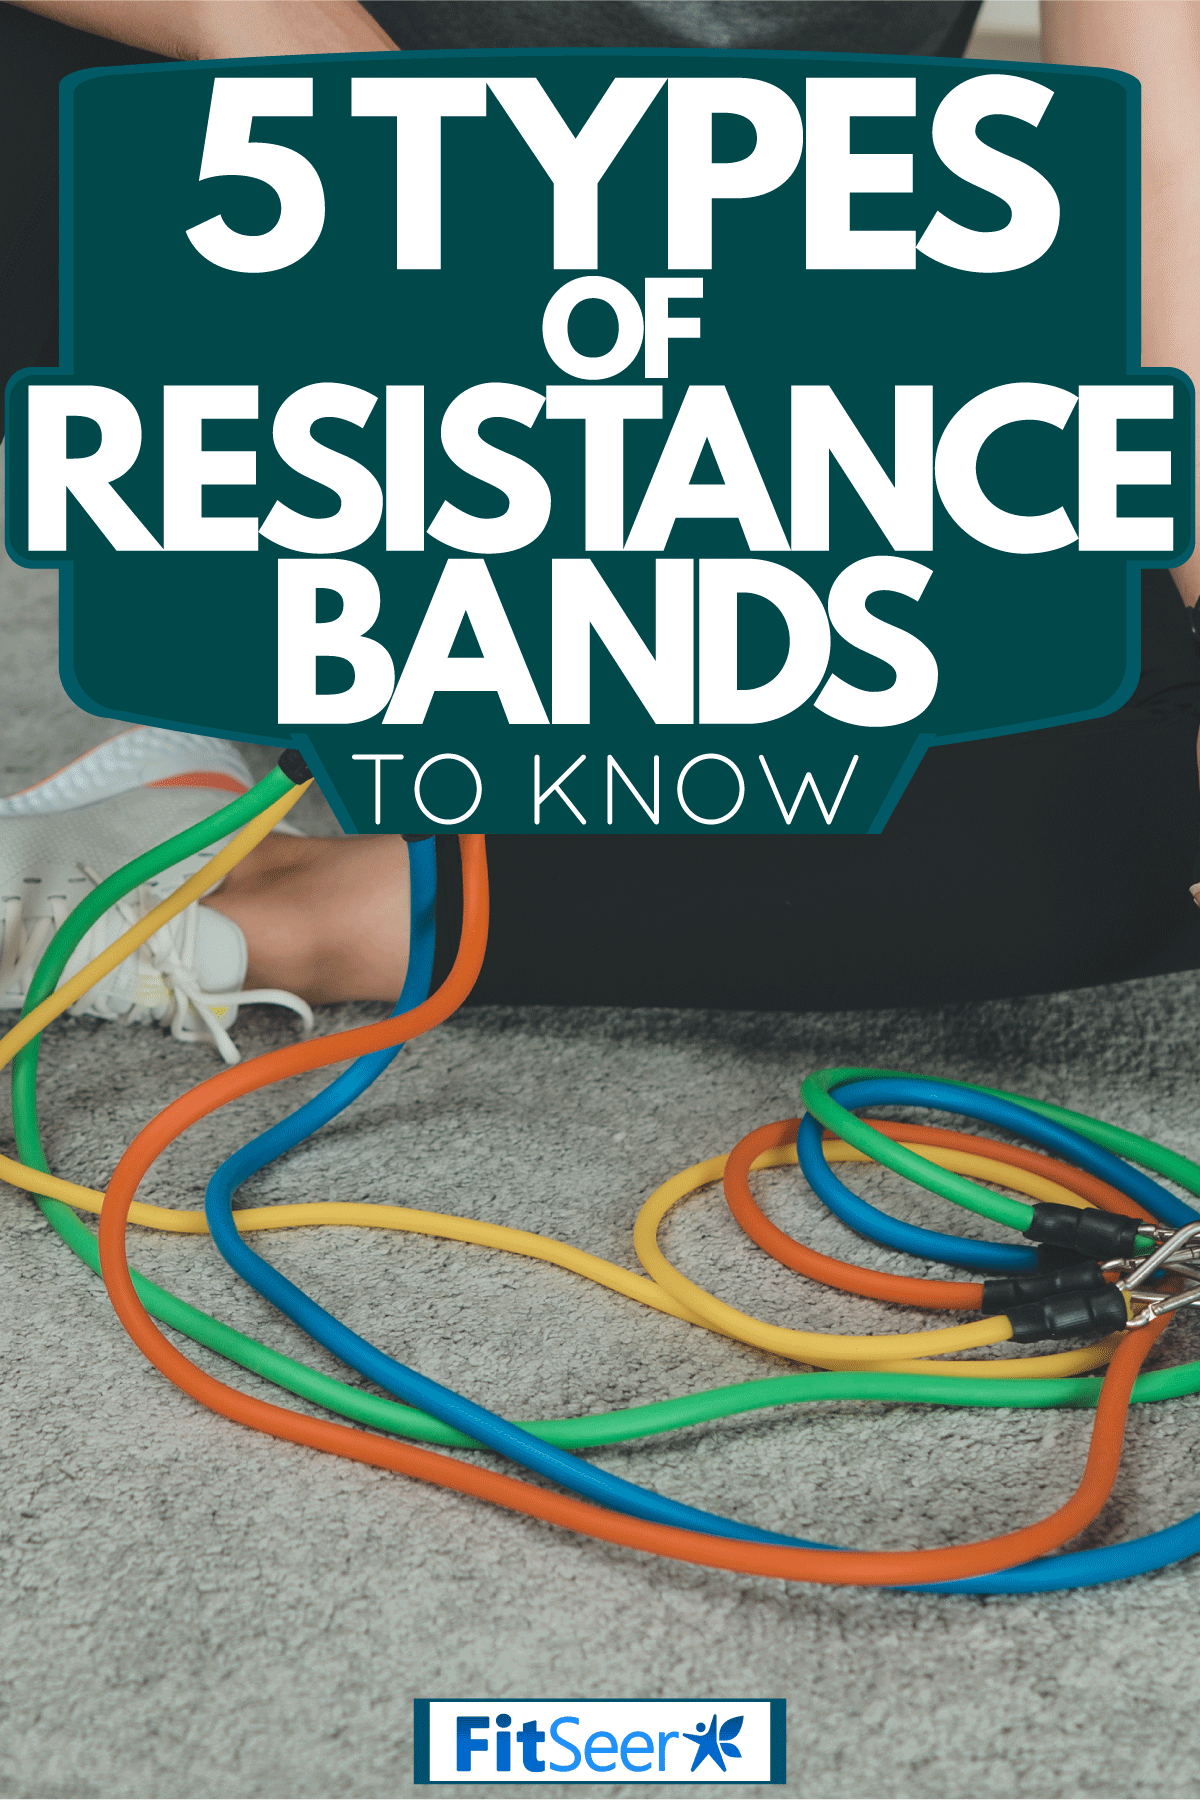 A woman taking a break from using resistance bands on her workout, 5 Types Of Resistance Bands To Know